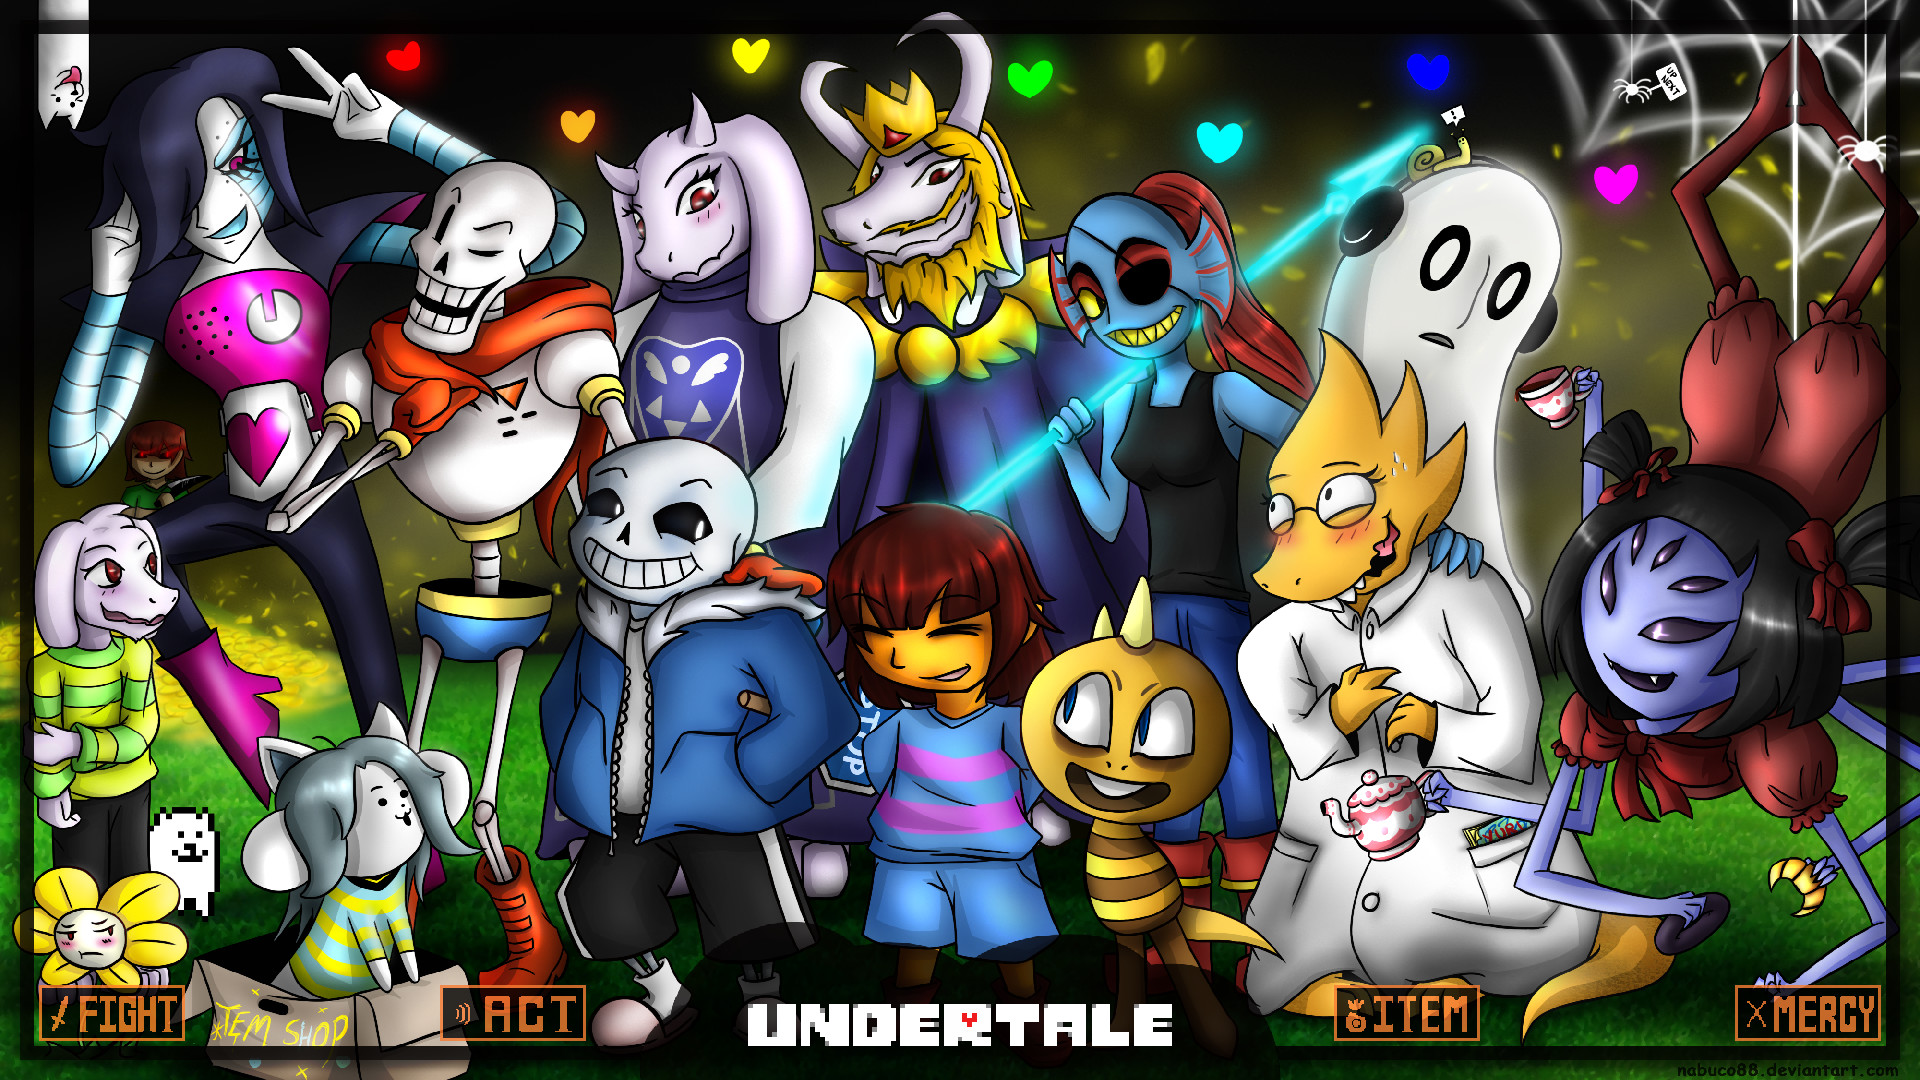 undertale_wallpaper_by_nabuco88-d9m046m.png (1920×1080) | viddio .